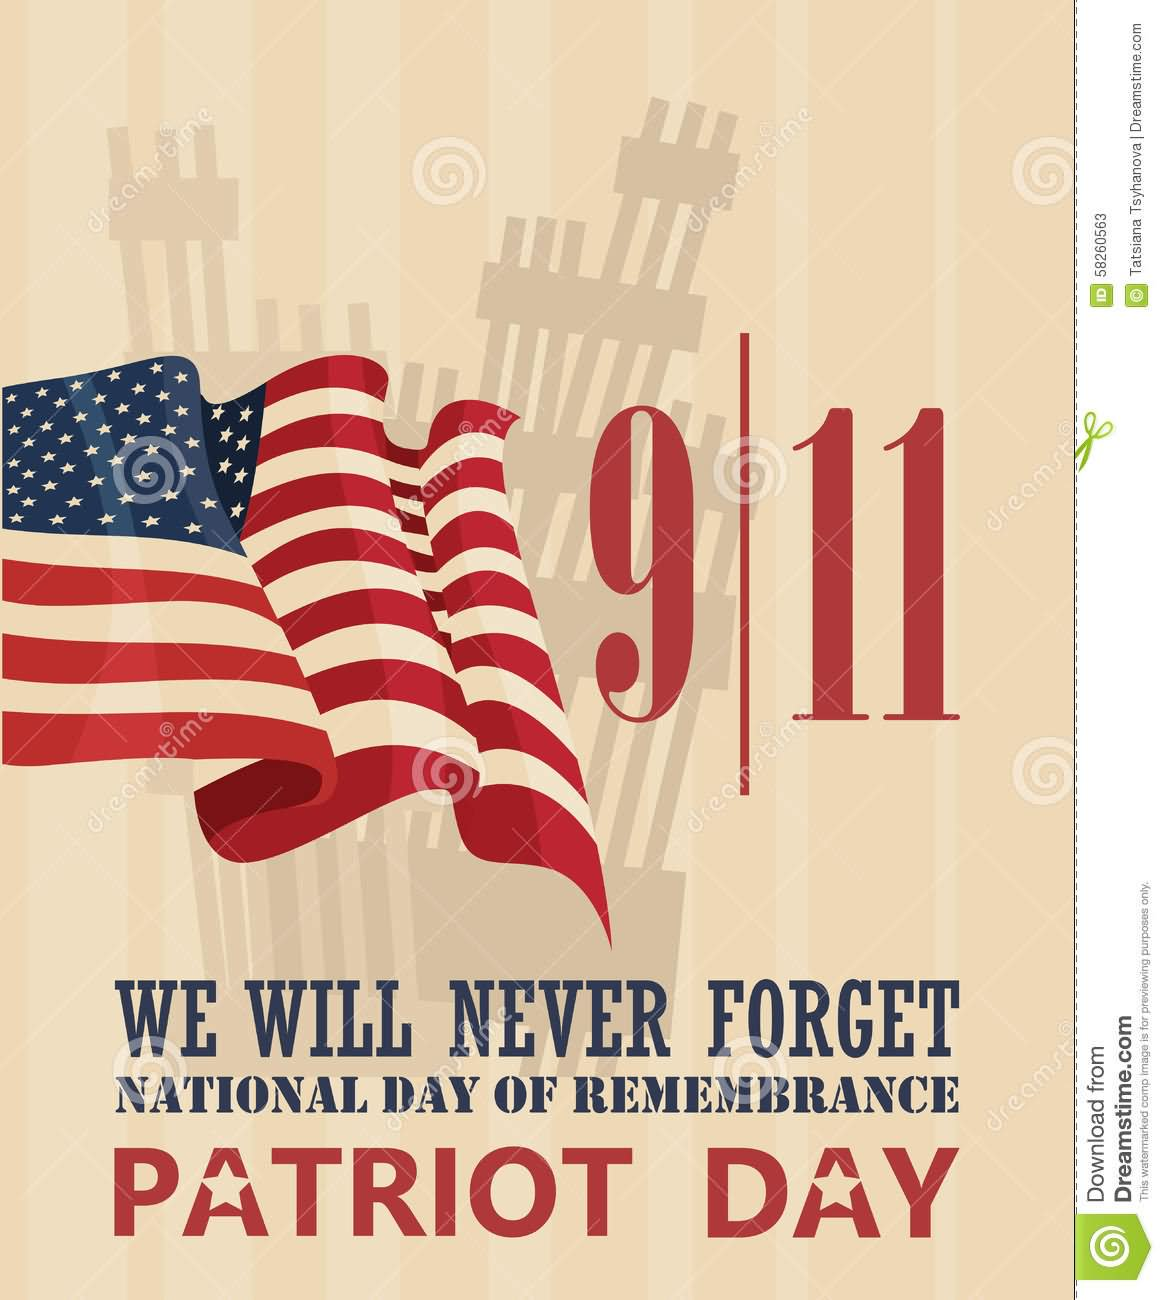 9-11 We Never Forget National Day Of Remembrance Patriot Day